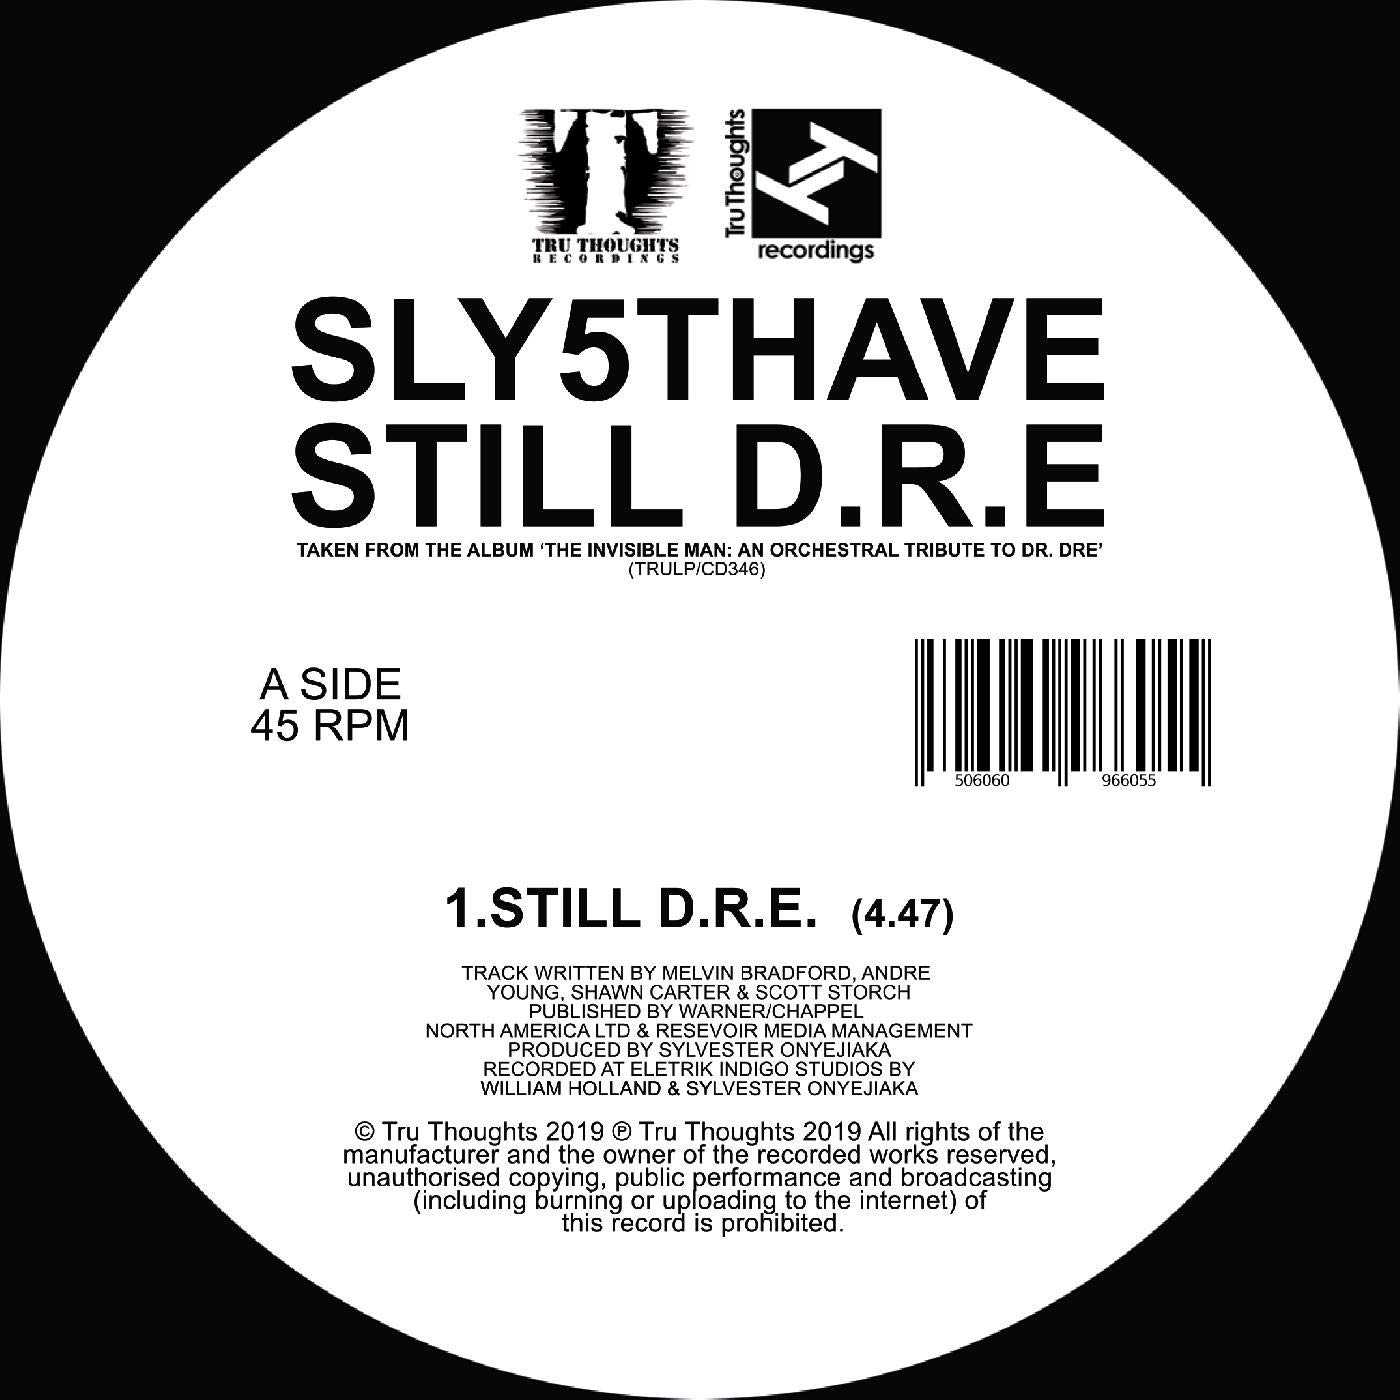 Sly5thave - Let Me Ride / Still D.R.E [Vinyl Single]